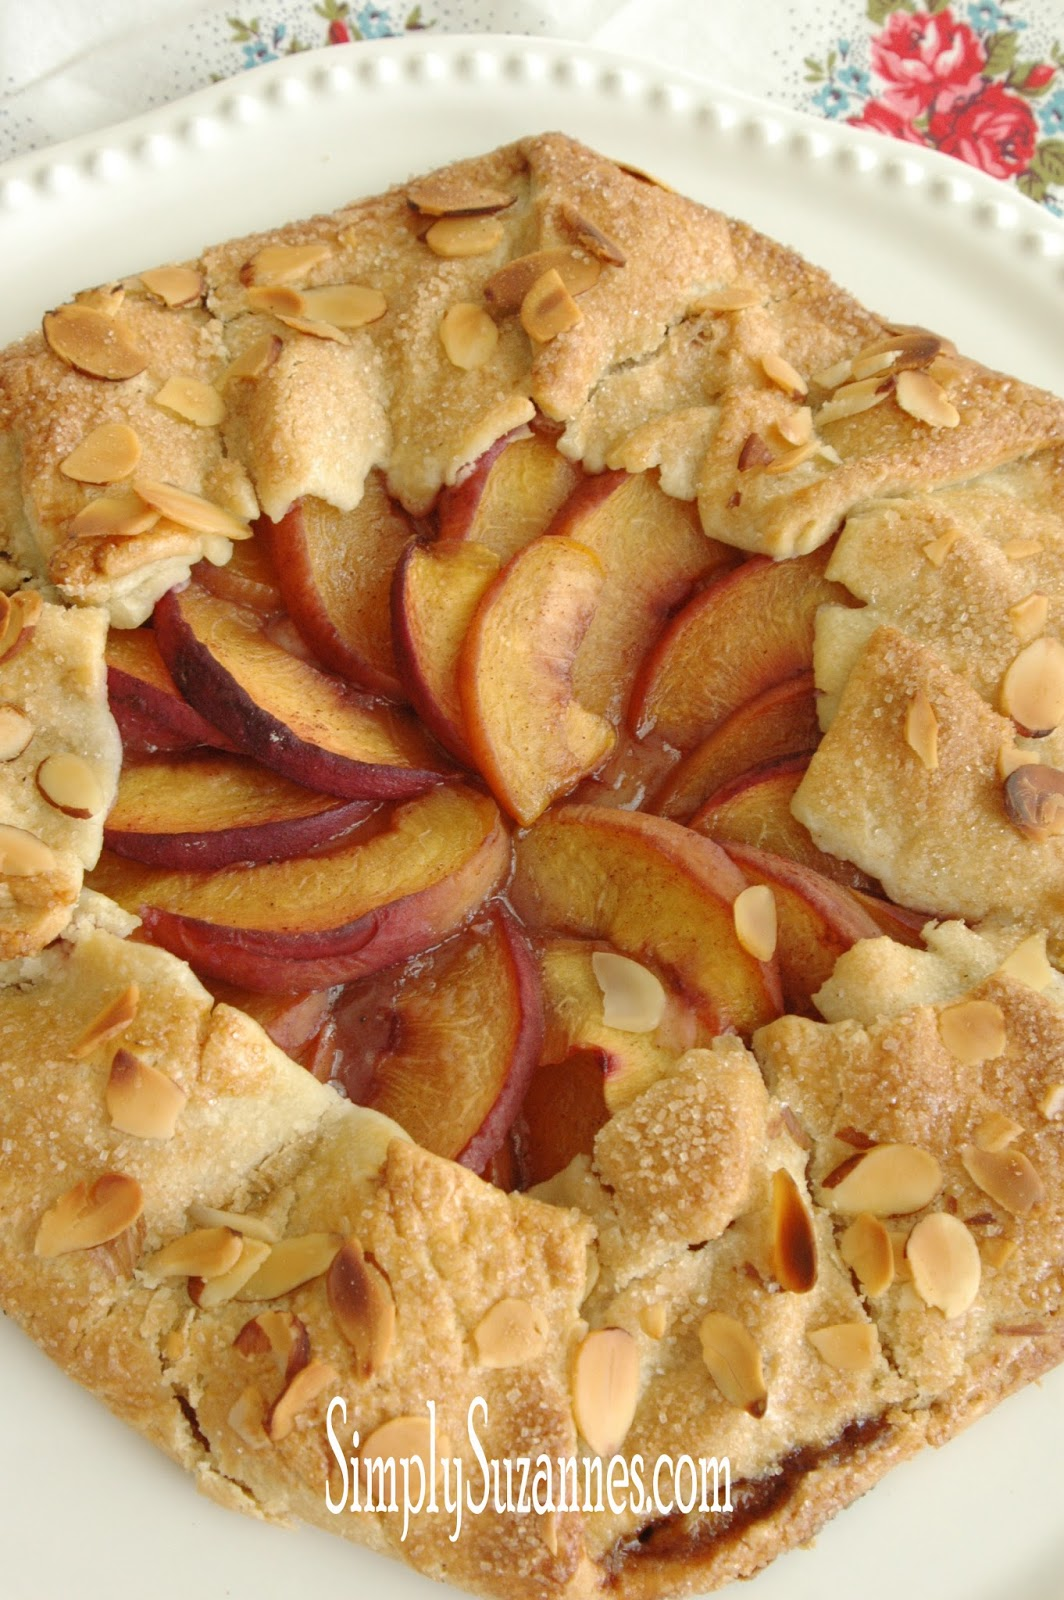 Simply Suzanne S At Home Peach And Almond Galette